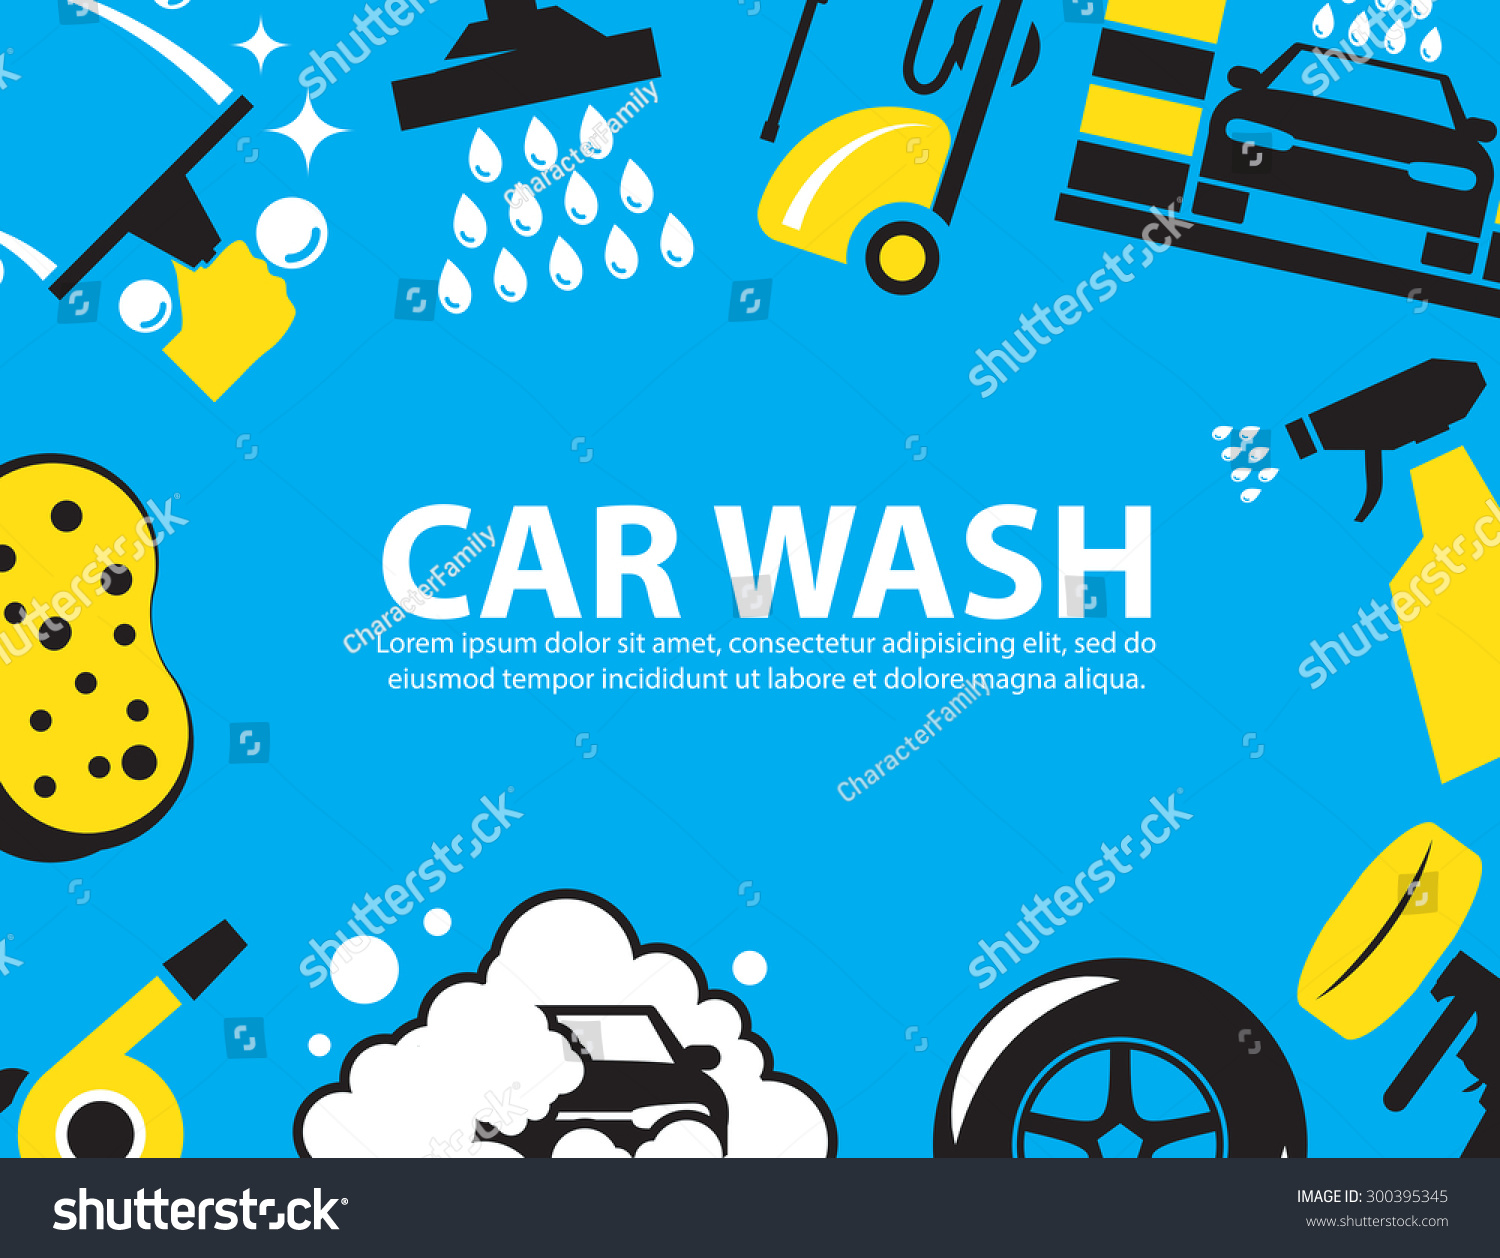 Car Wash Powerpoint Background